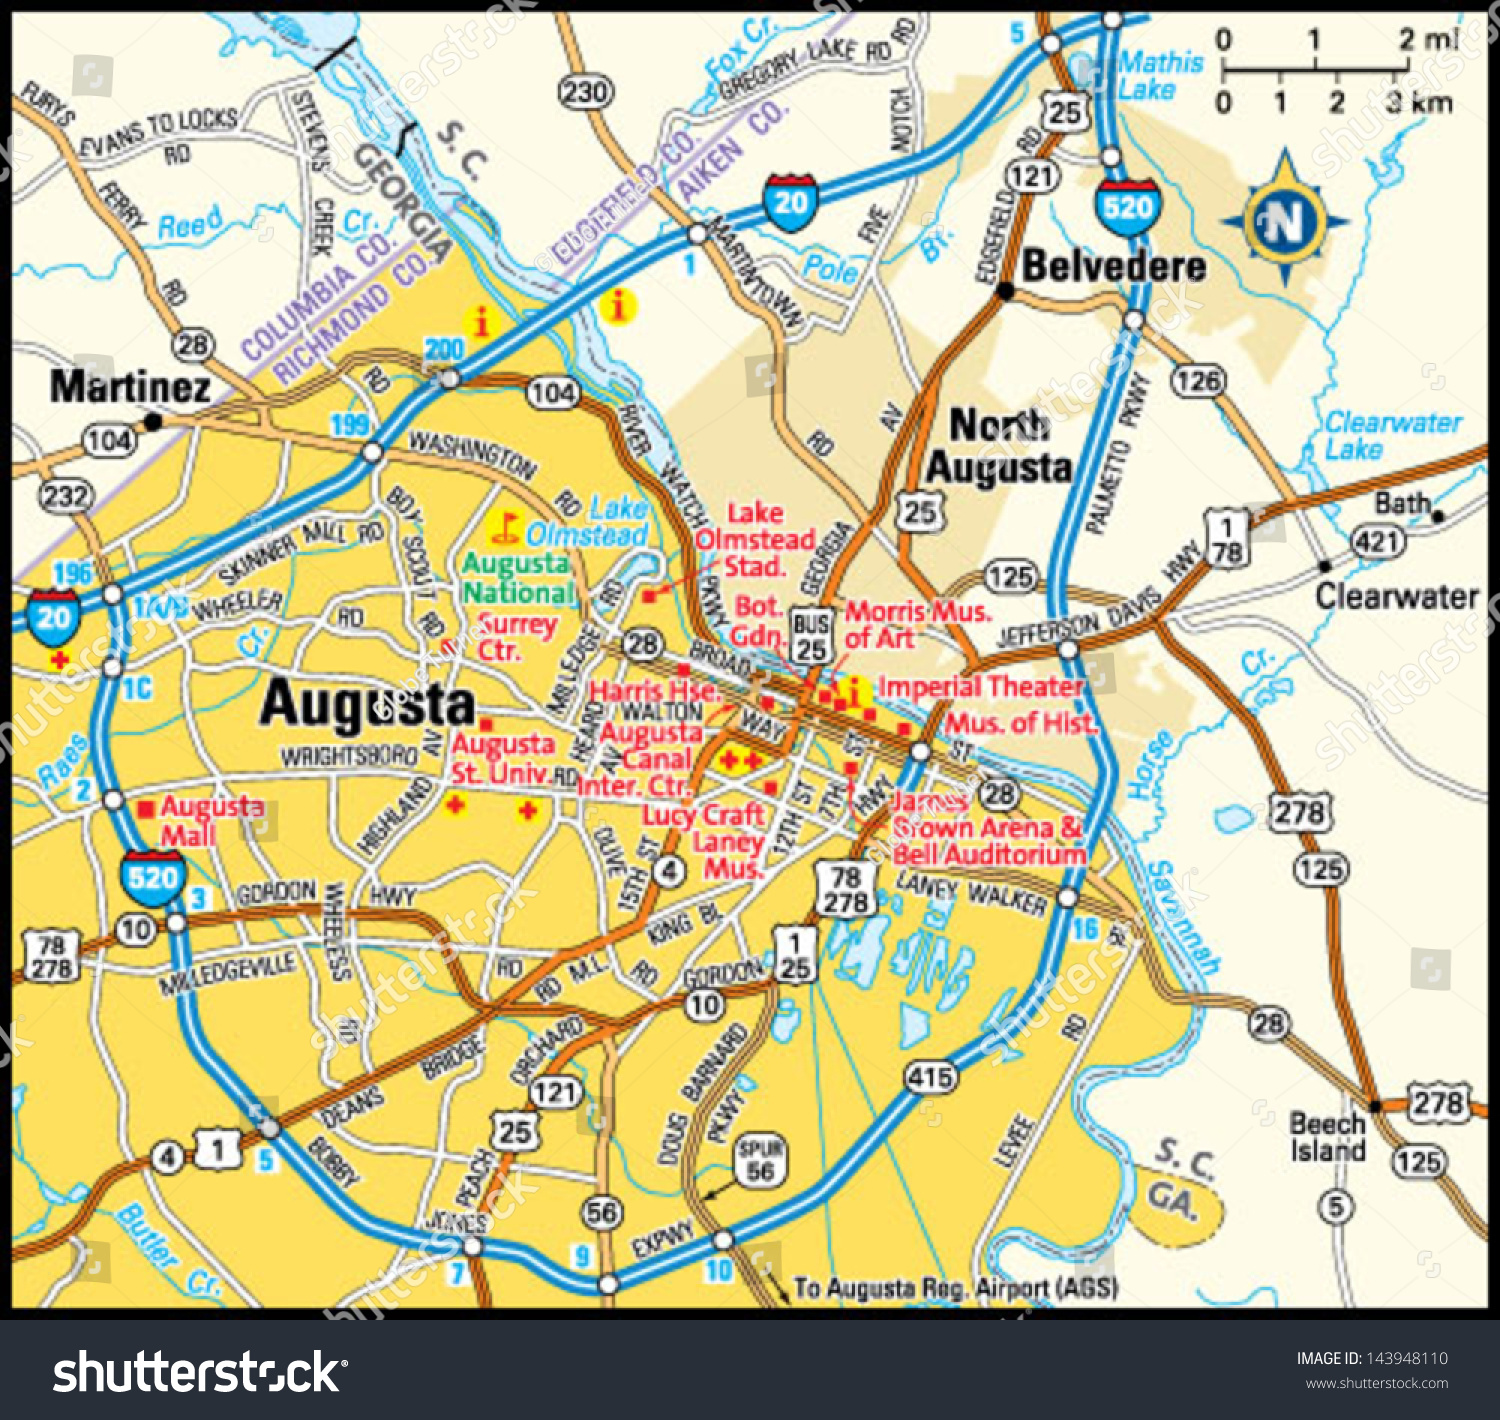 Map Of Augusta Georgia And Surrounding Area.Augusta Georgia Area Map Stock Vector Royalty Free 143948110